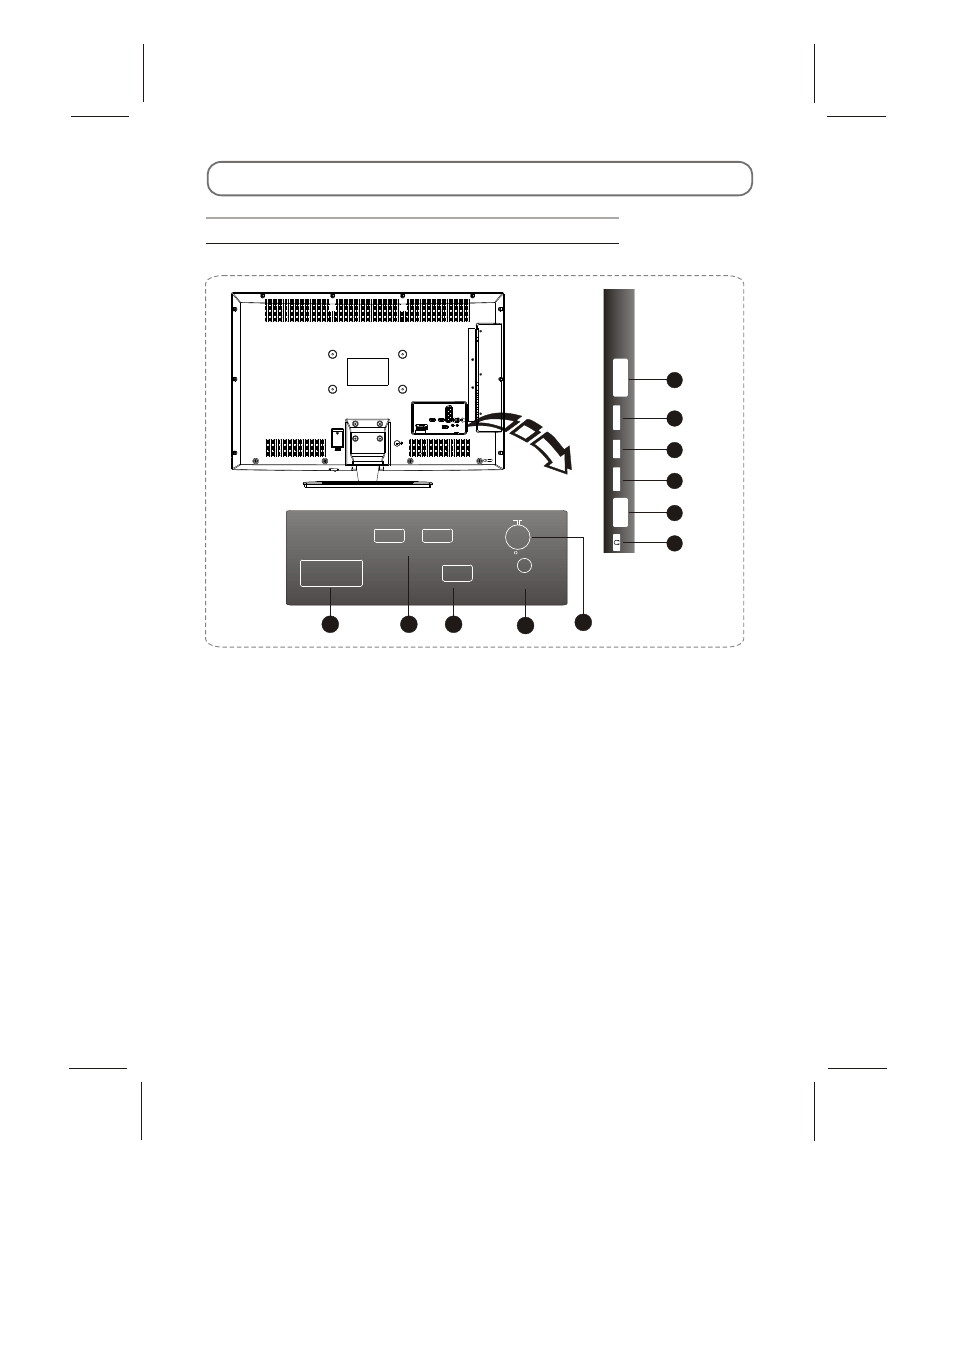 External Schematic And Installation Back Panel Skyworth Led 32e60 Vga Cable User Manual Page